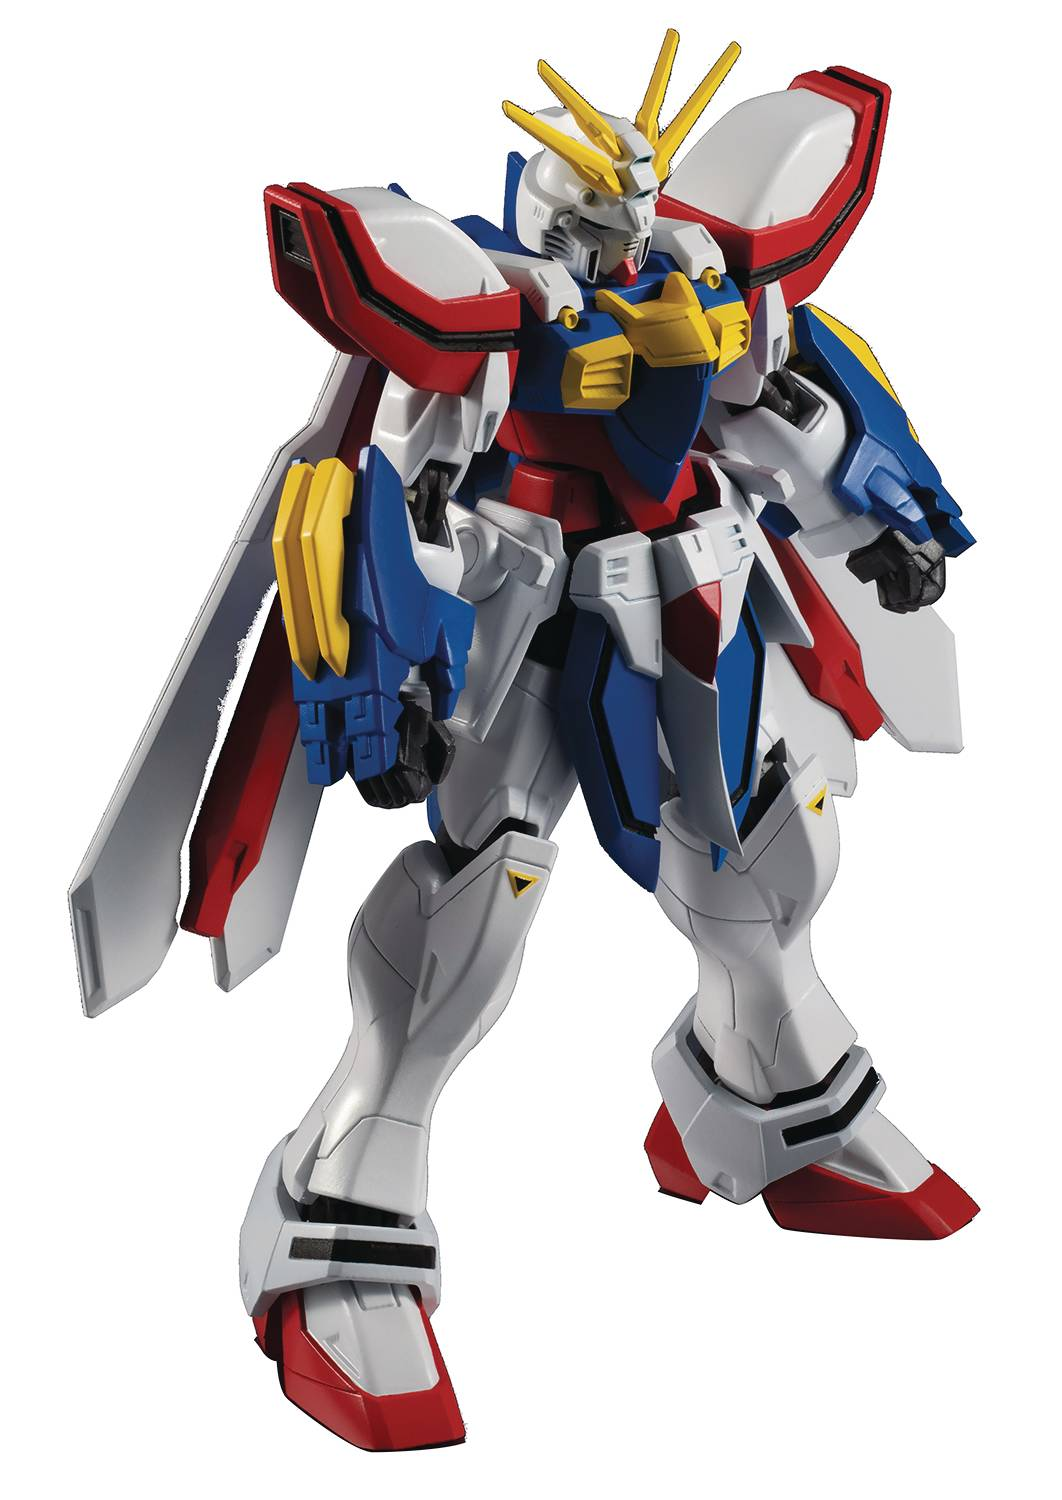 MOBILE FIGHTER G GUNDAM GF13-017NJ II GOD GUNDAM UNIVERSE AF